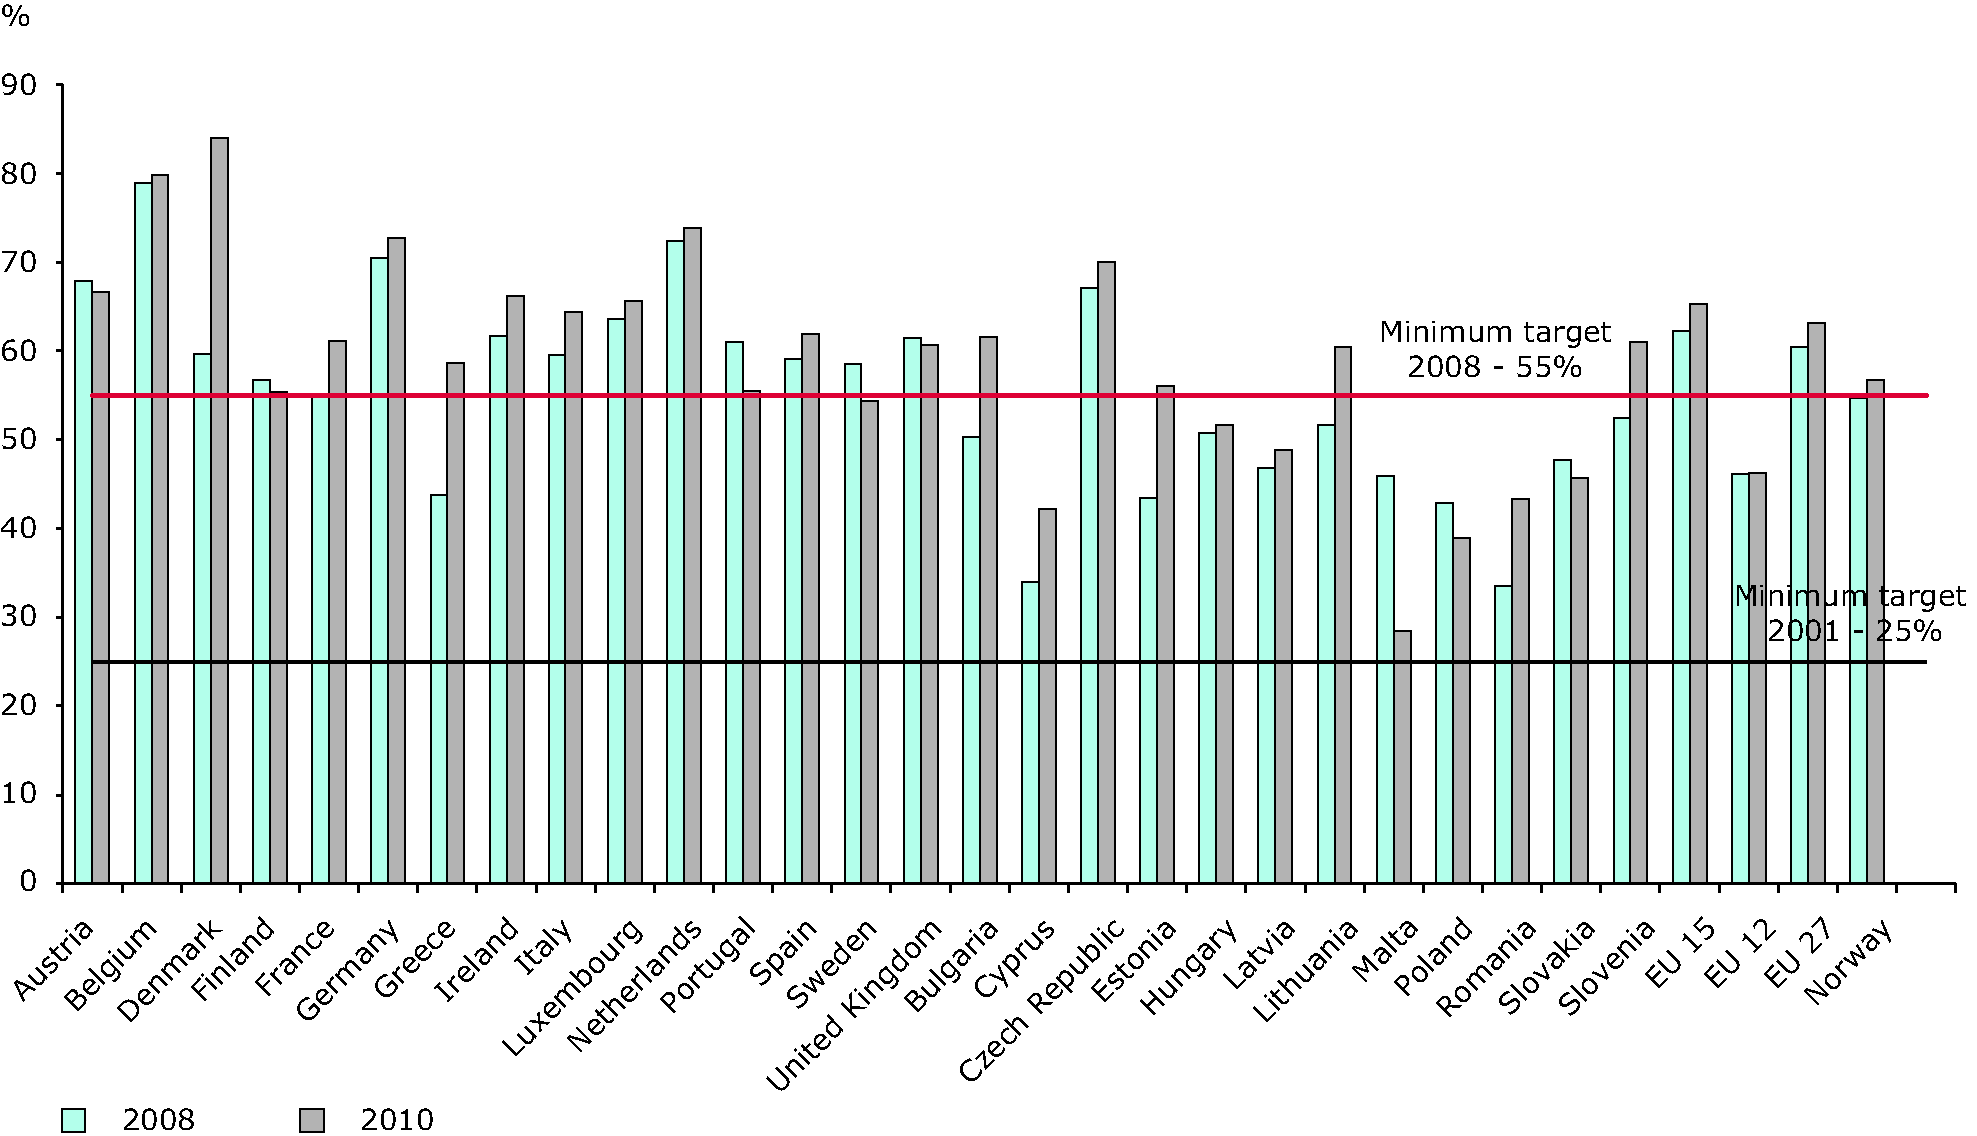 Recycling of packaging waste by country, 2008 and 2010